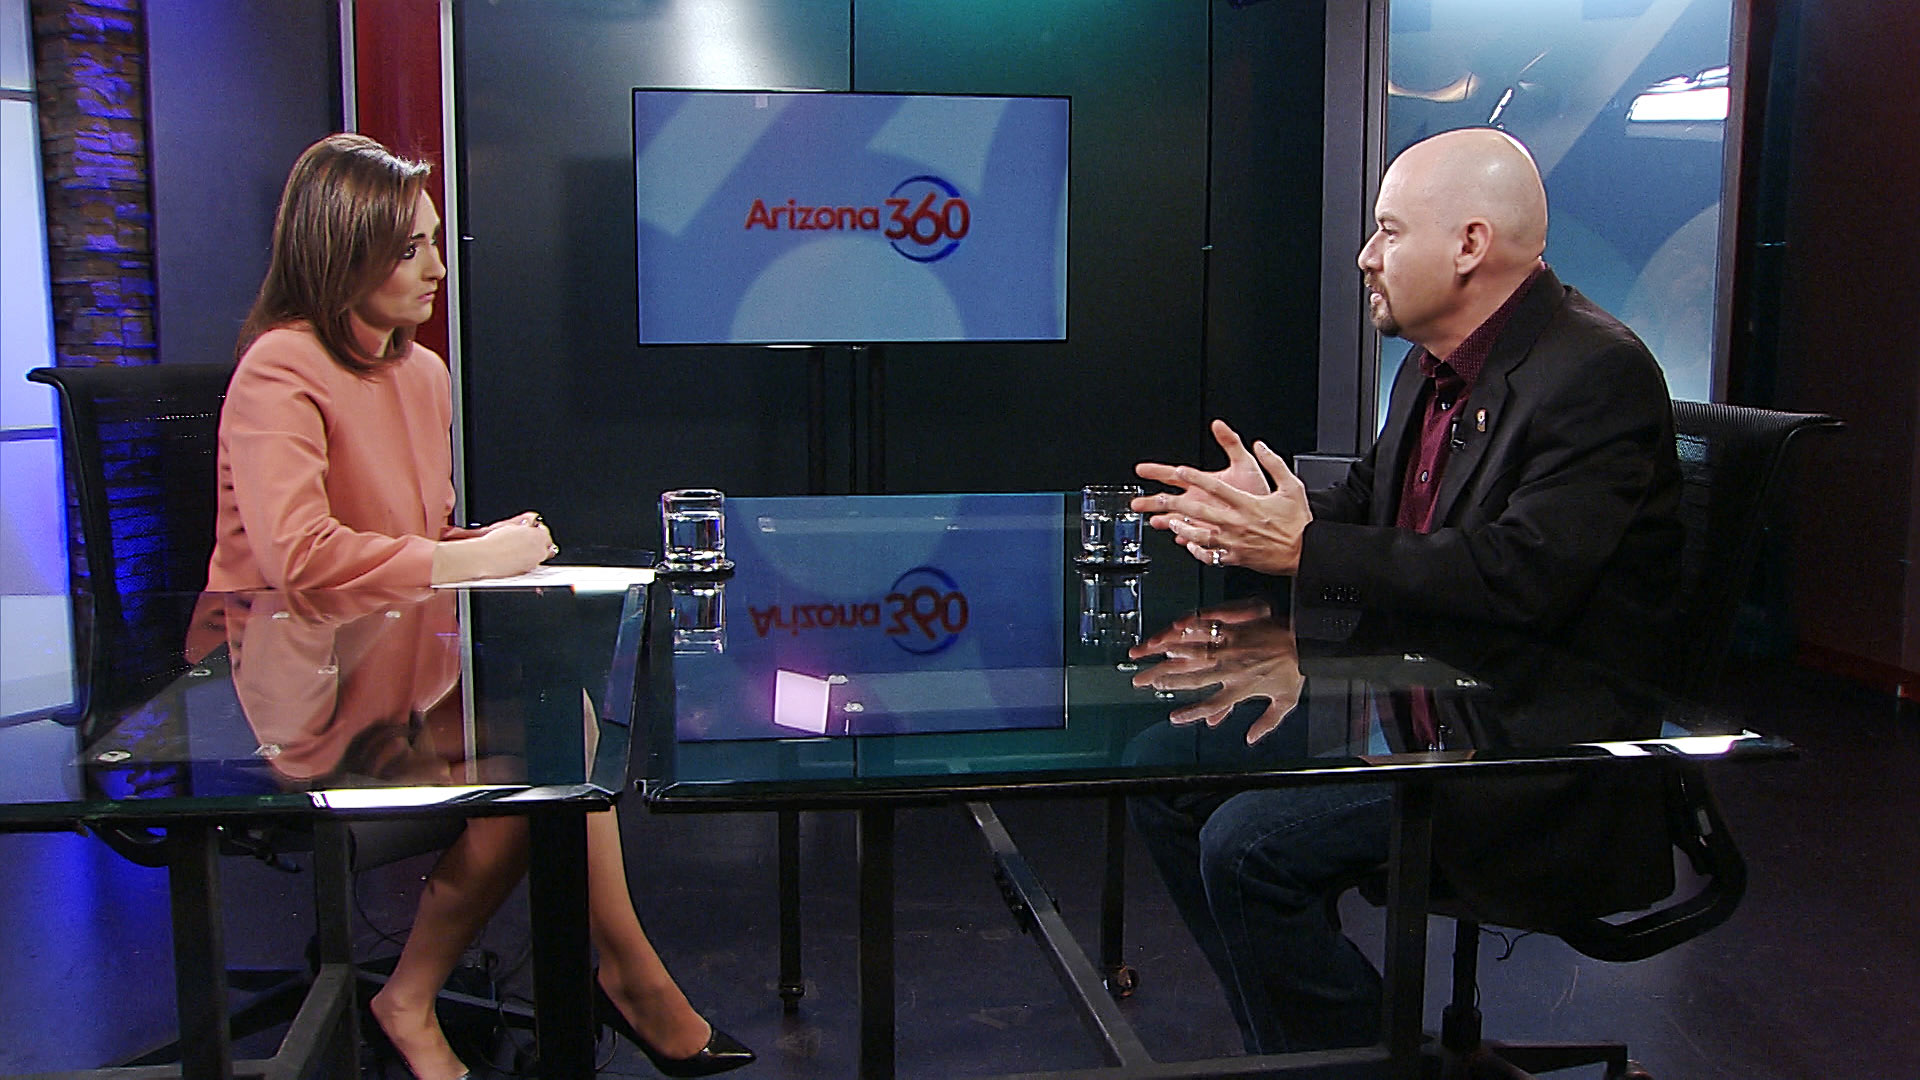 National Border Patrol Council Vice President Art Del Cueto sits for an interview with Arizona 360 host Lorraine Rivera at Arizona Public Media on Feb. 19, 2020.